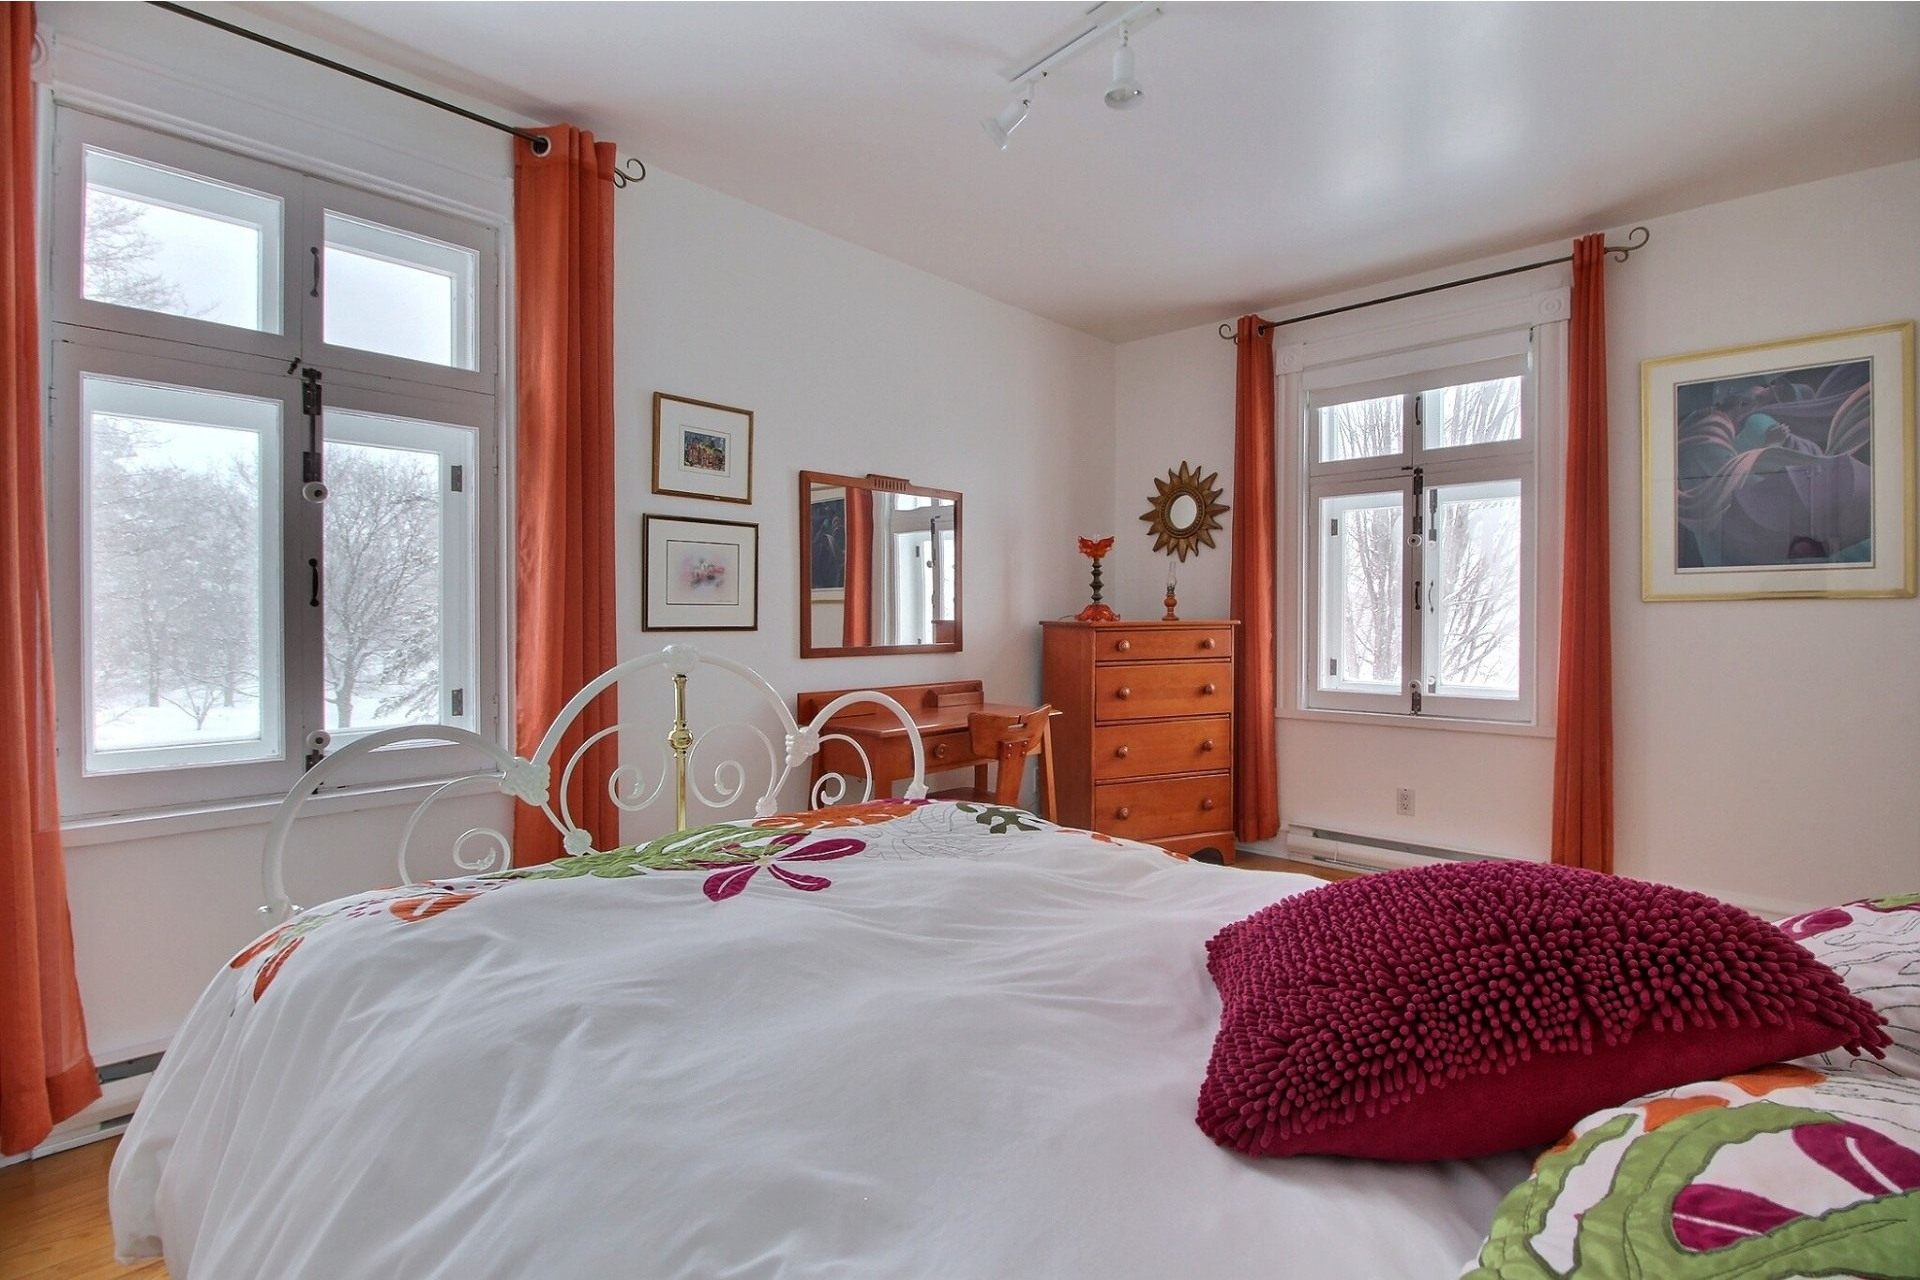 image 19 - House For sale Joliette - 8 rooms